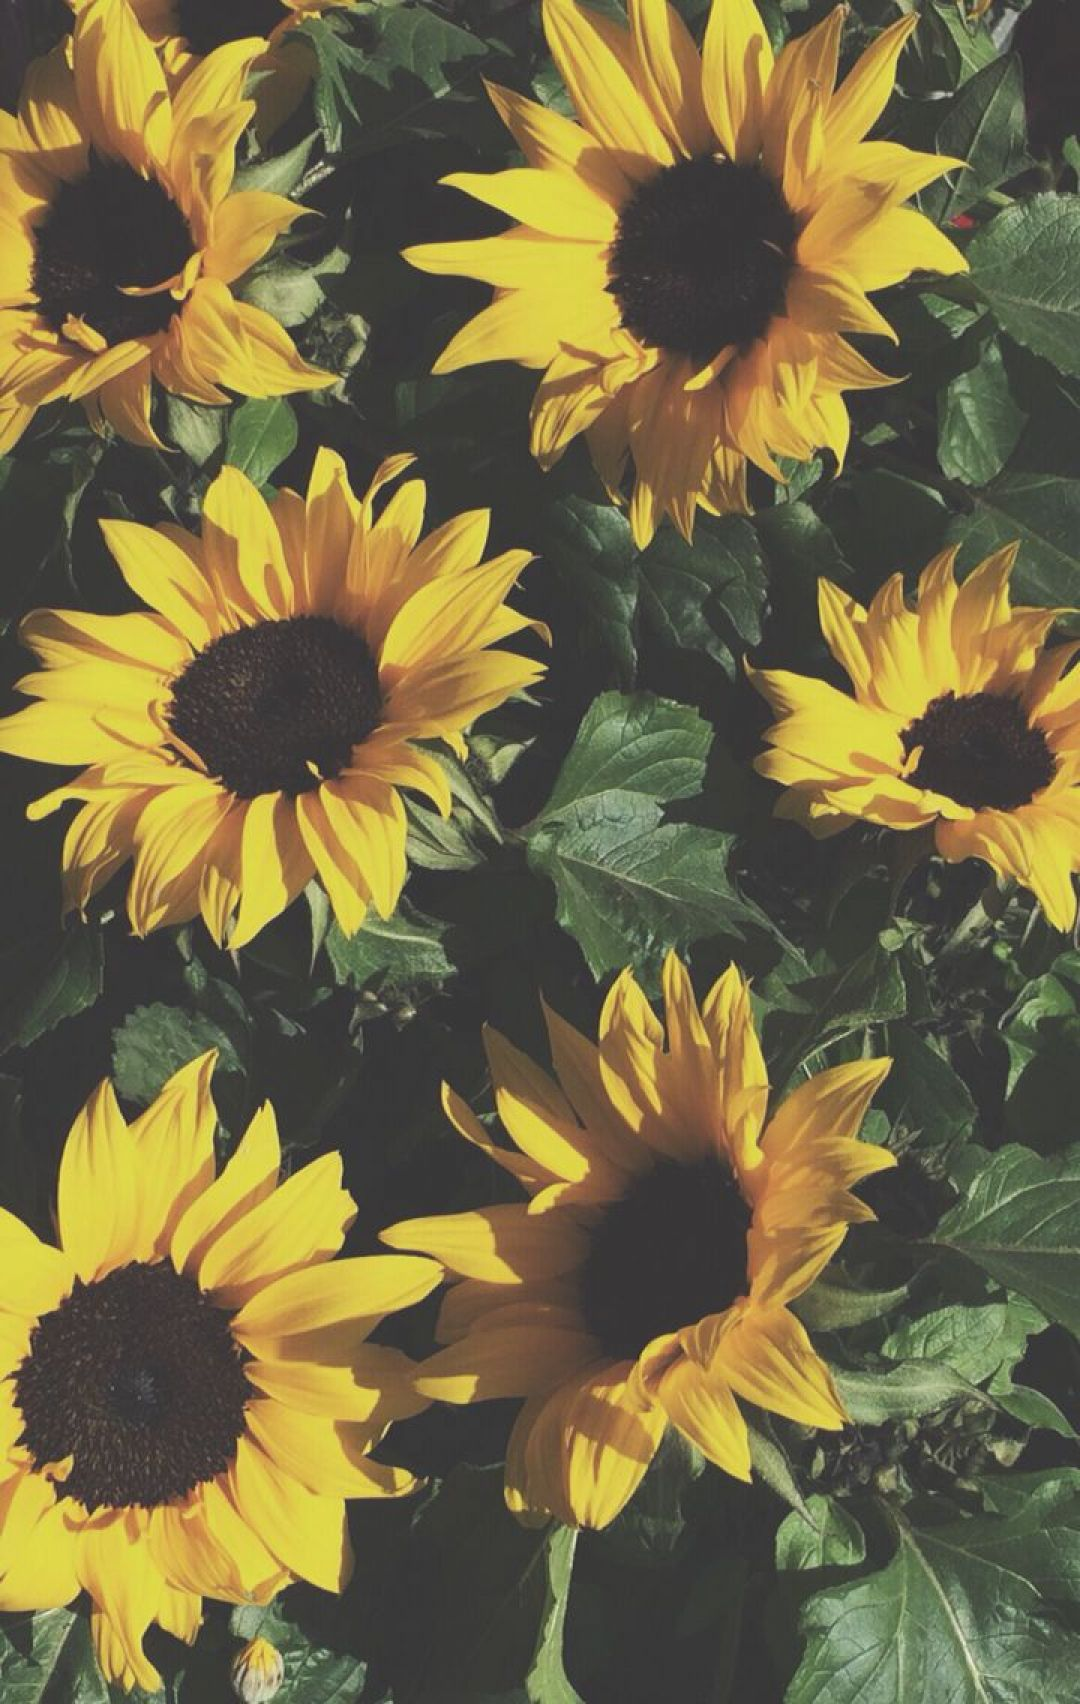 Yellow Aesthetic Sunflowers HD Wallpapers (Desktop Background / Android / iPhone) (1080p, 4k) (39238) - 3D / Abstract